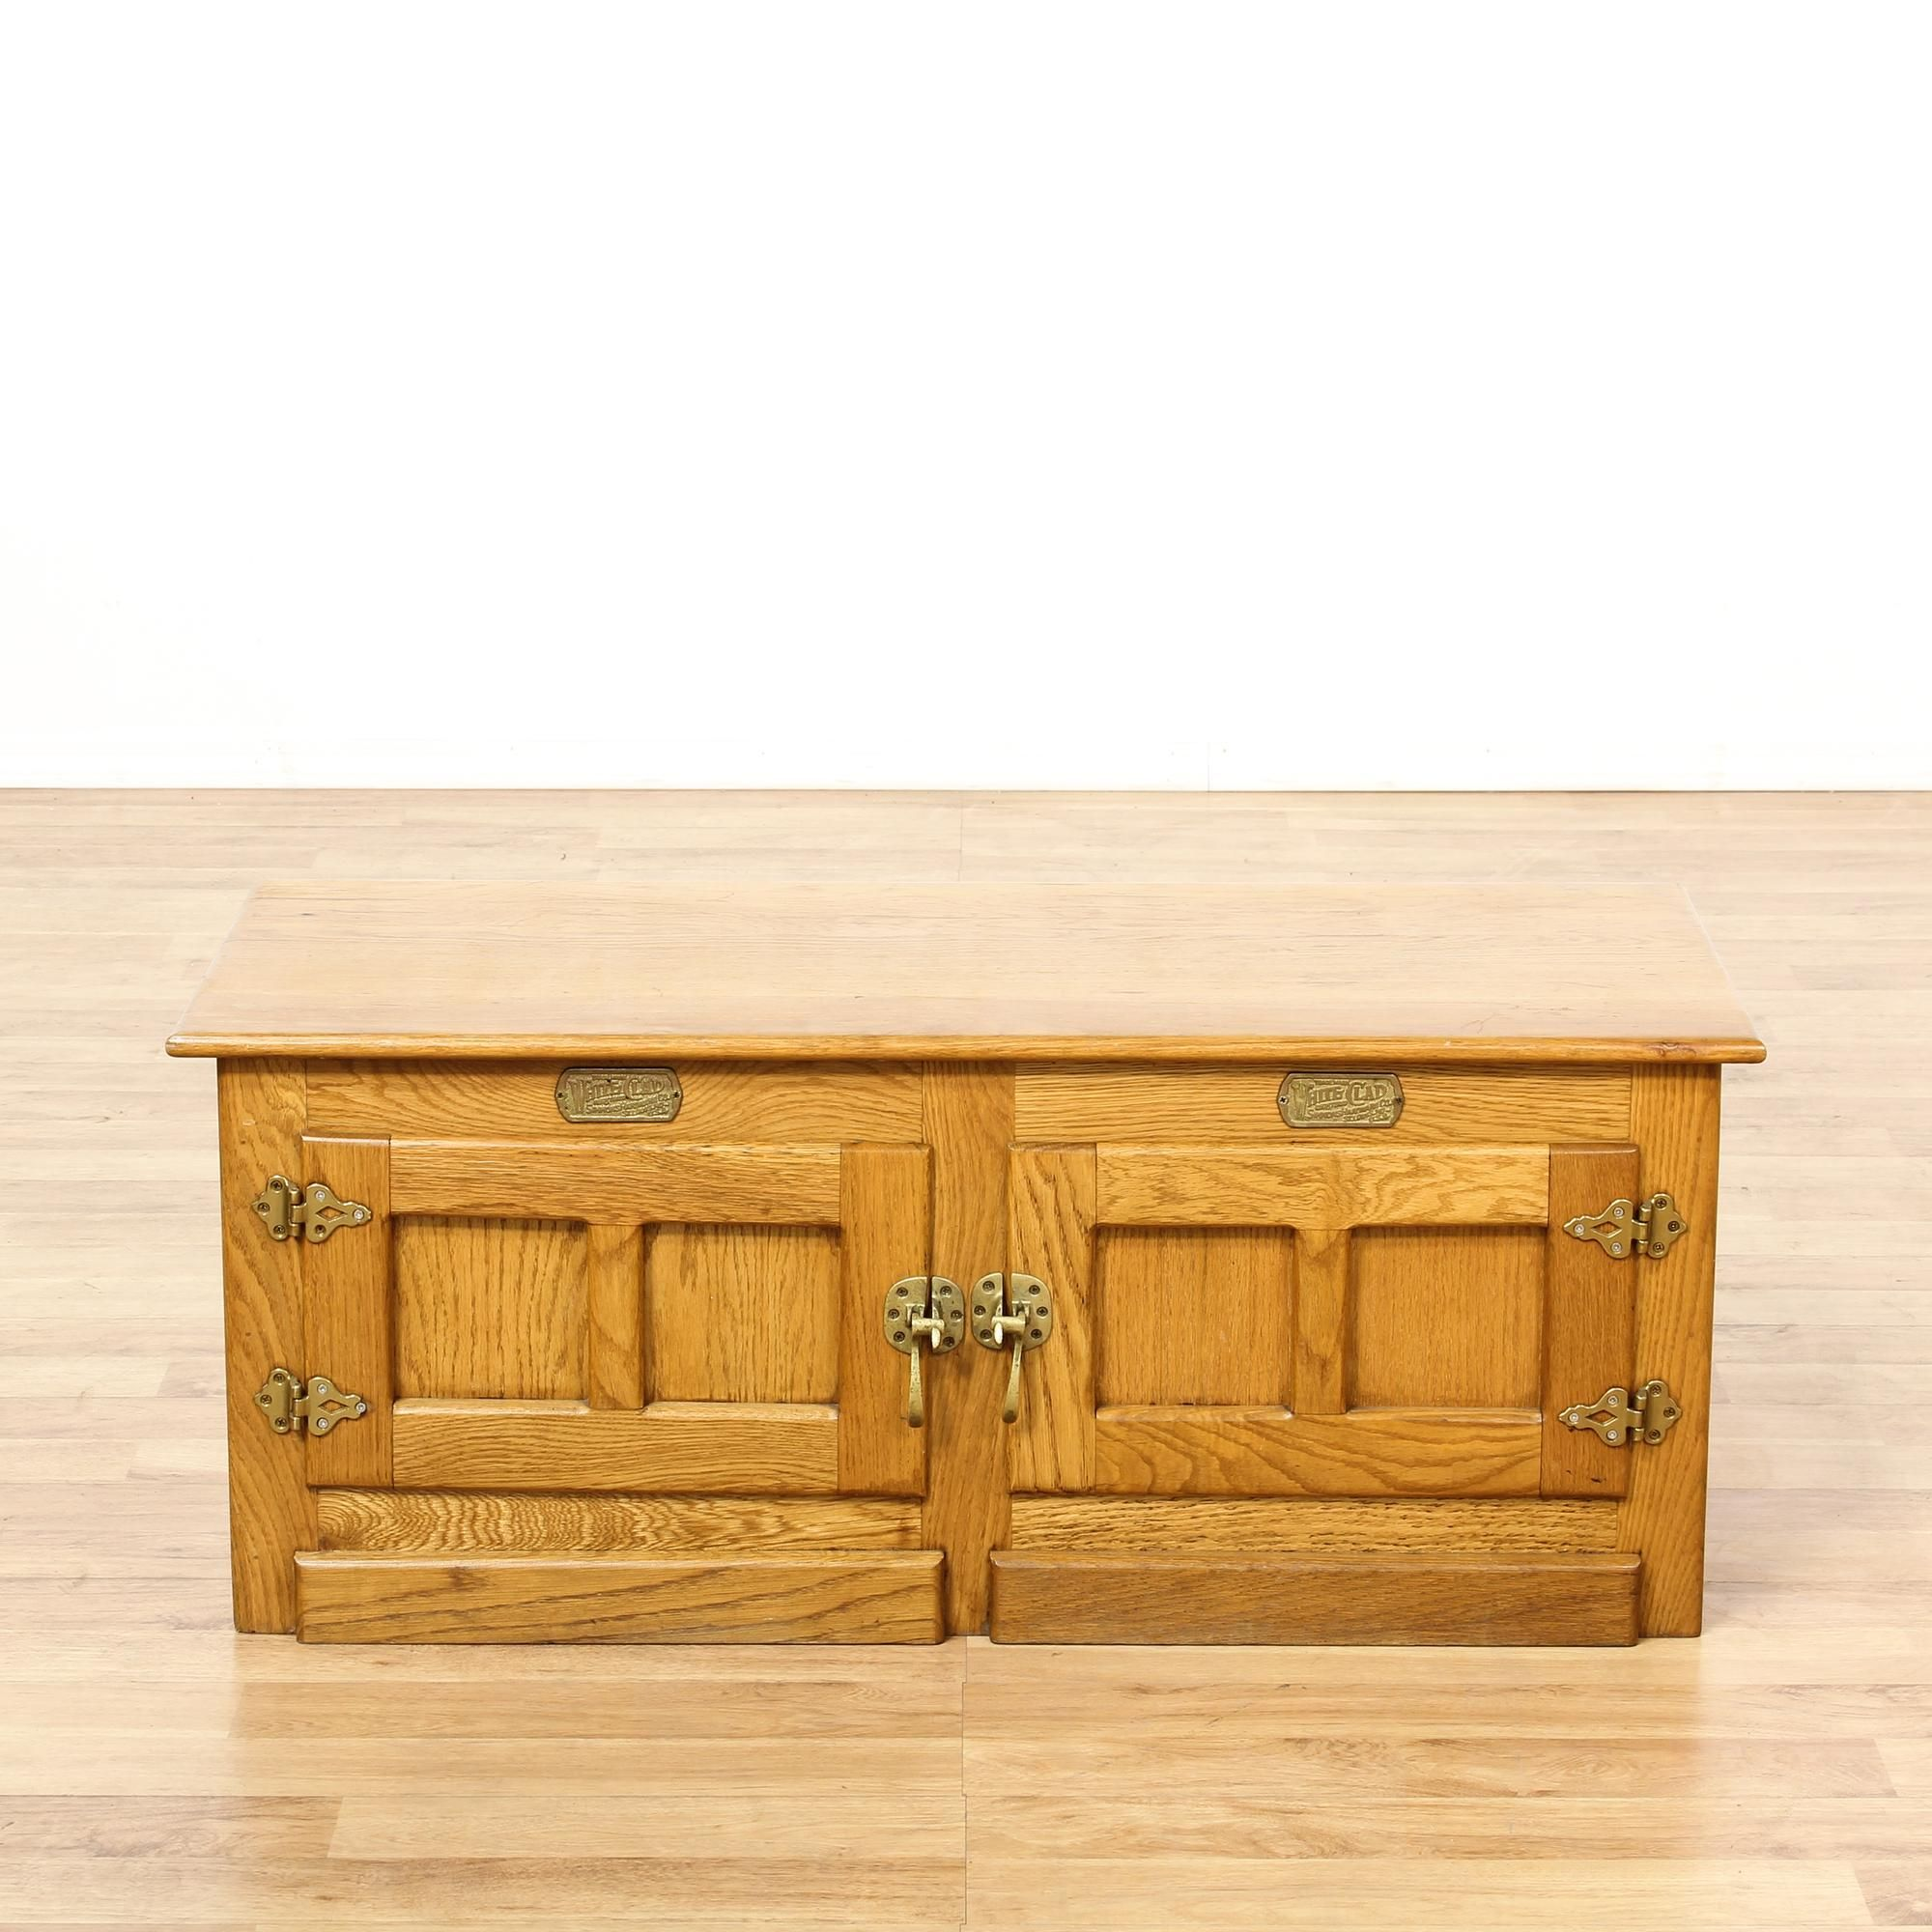 This White Clad Ice Box Cabinet Is Featured In A Solid Wood With A Glossy Light Oak Finish This Coffee Table Ben Vintage Furniture Vintage Storage Light Oak